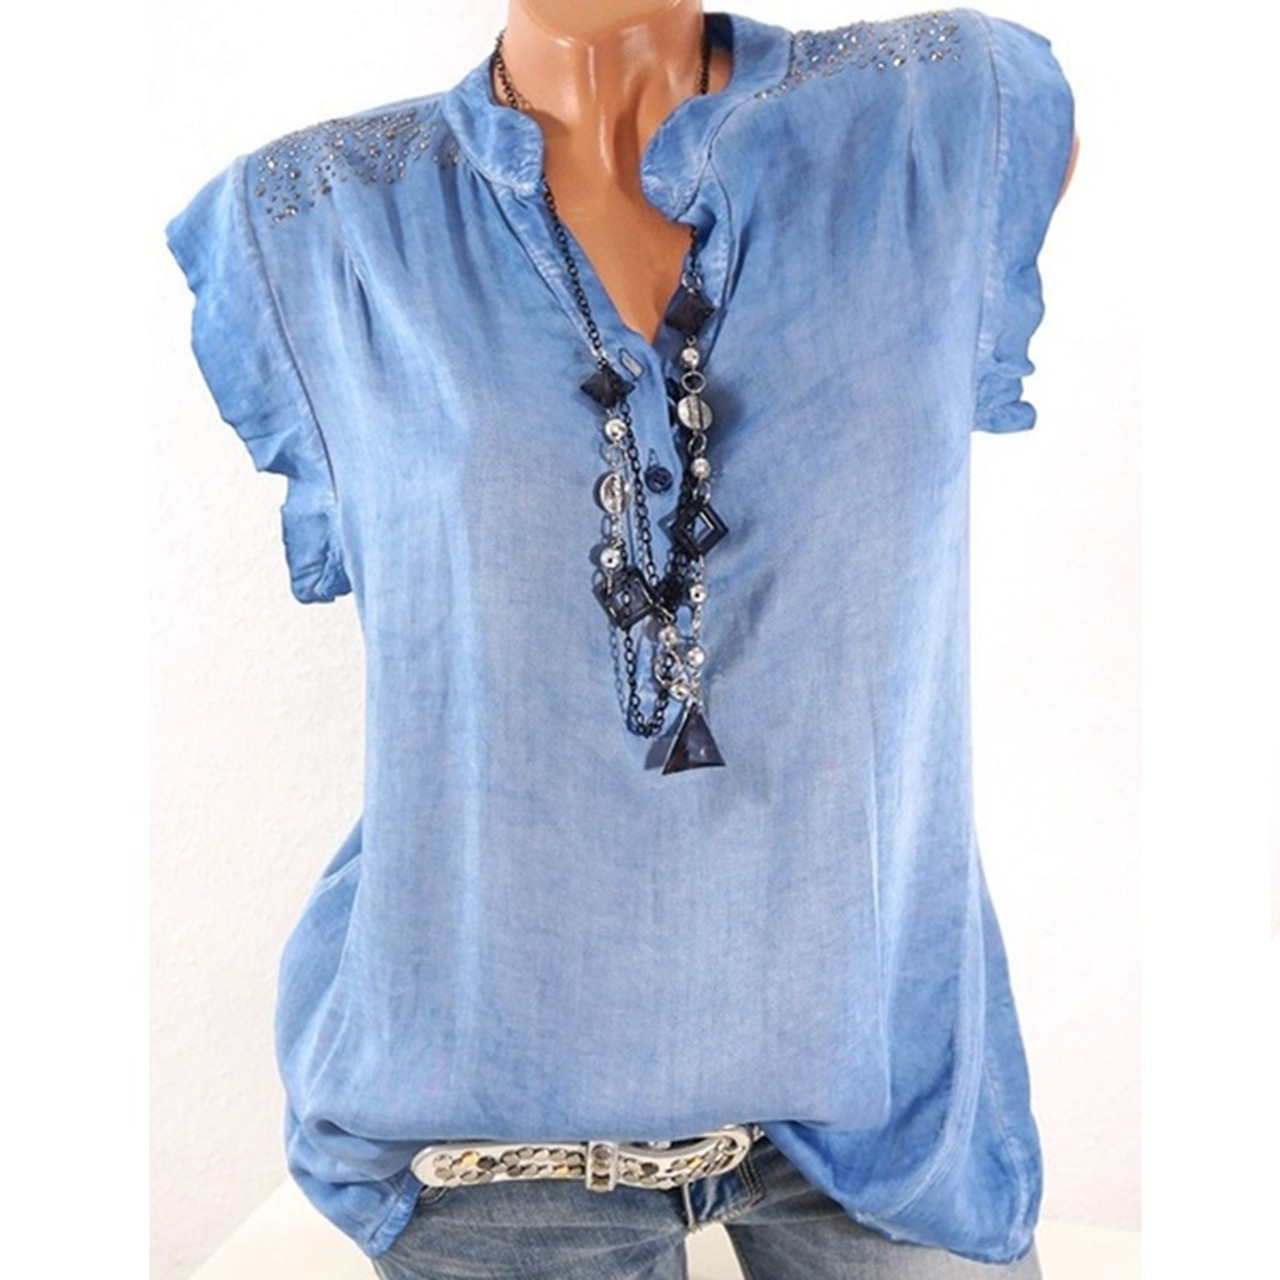 7a7fd717486 Plus Size 5XL Women Tops and Blouse Solid Sleeveless V Neck Loose Casual  Summer Top Blouses ...